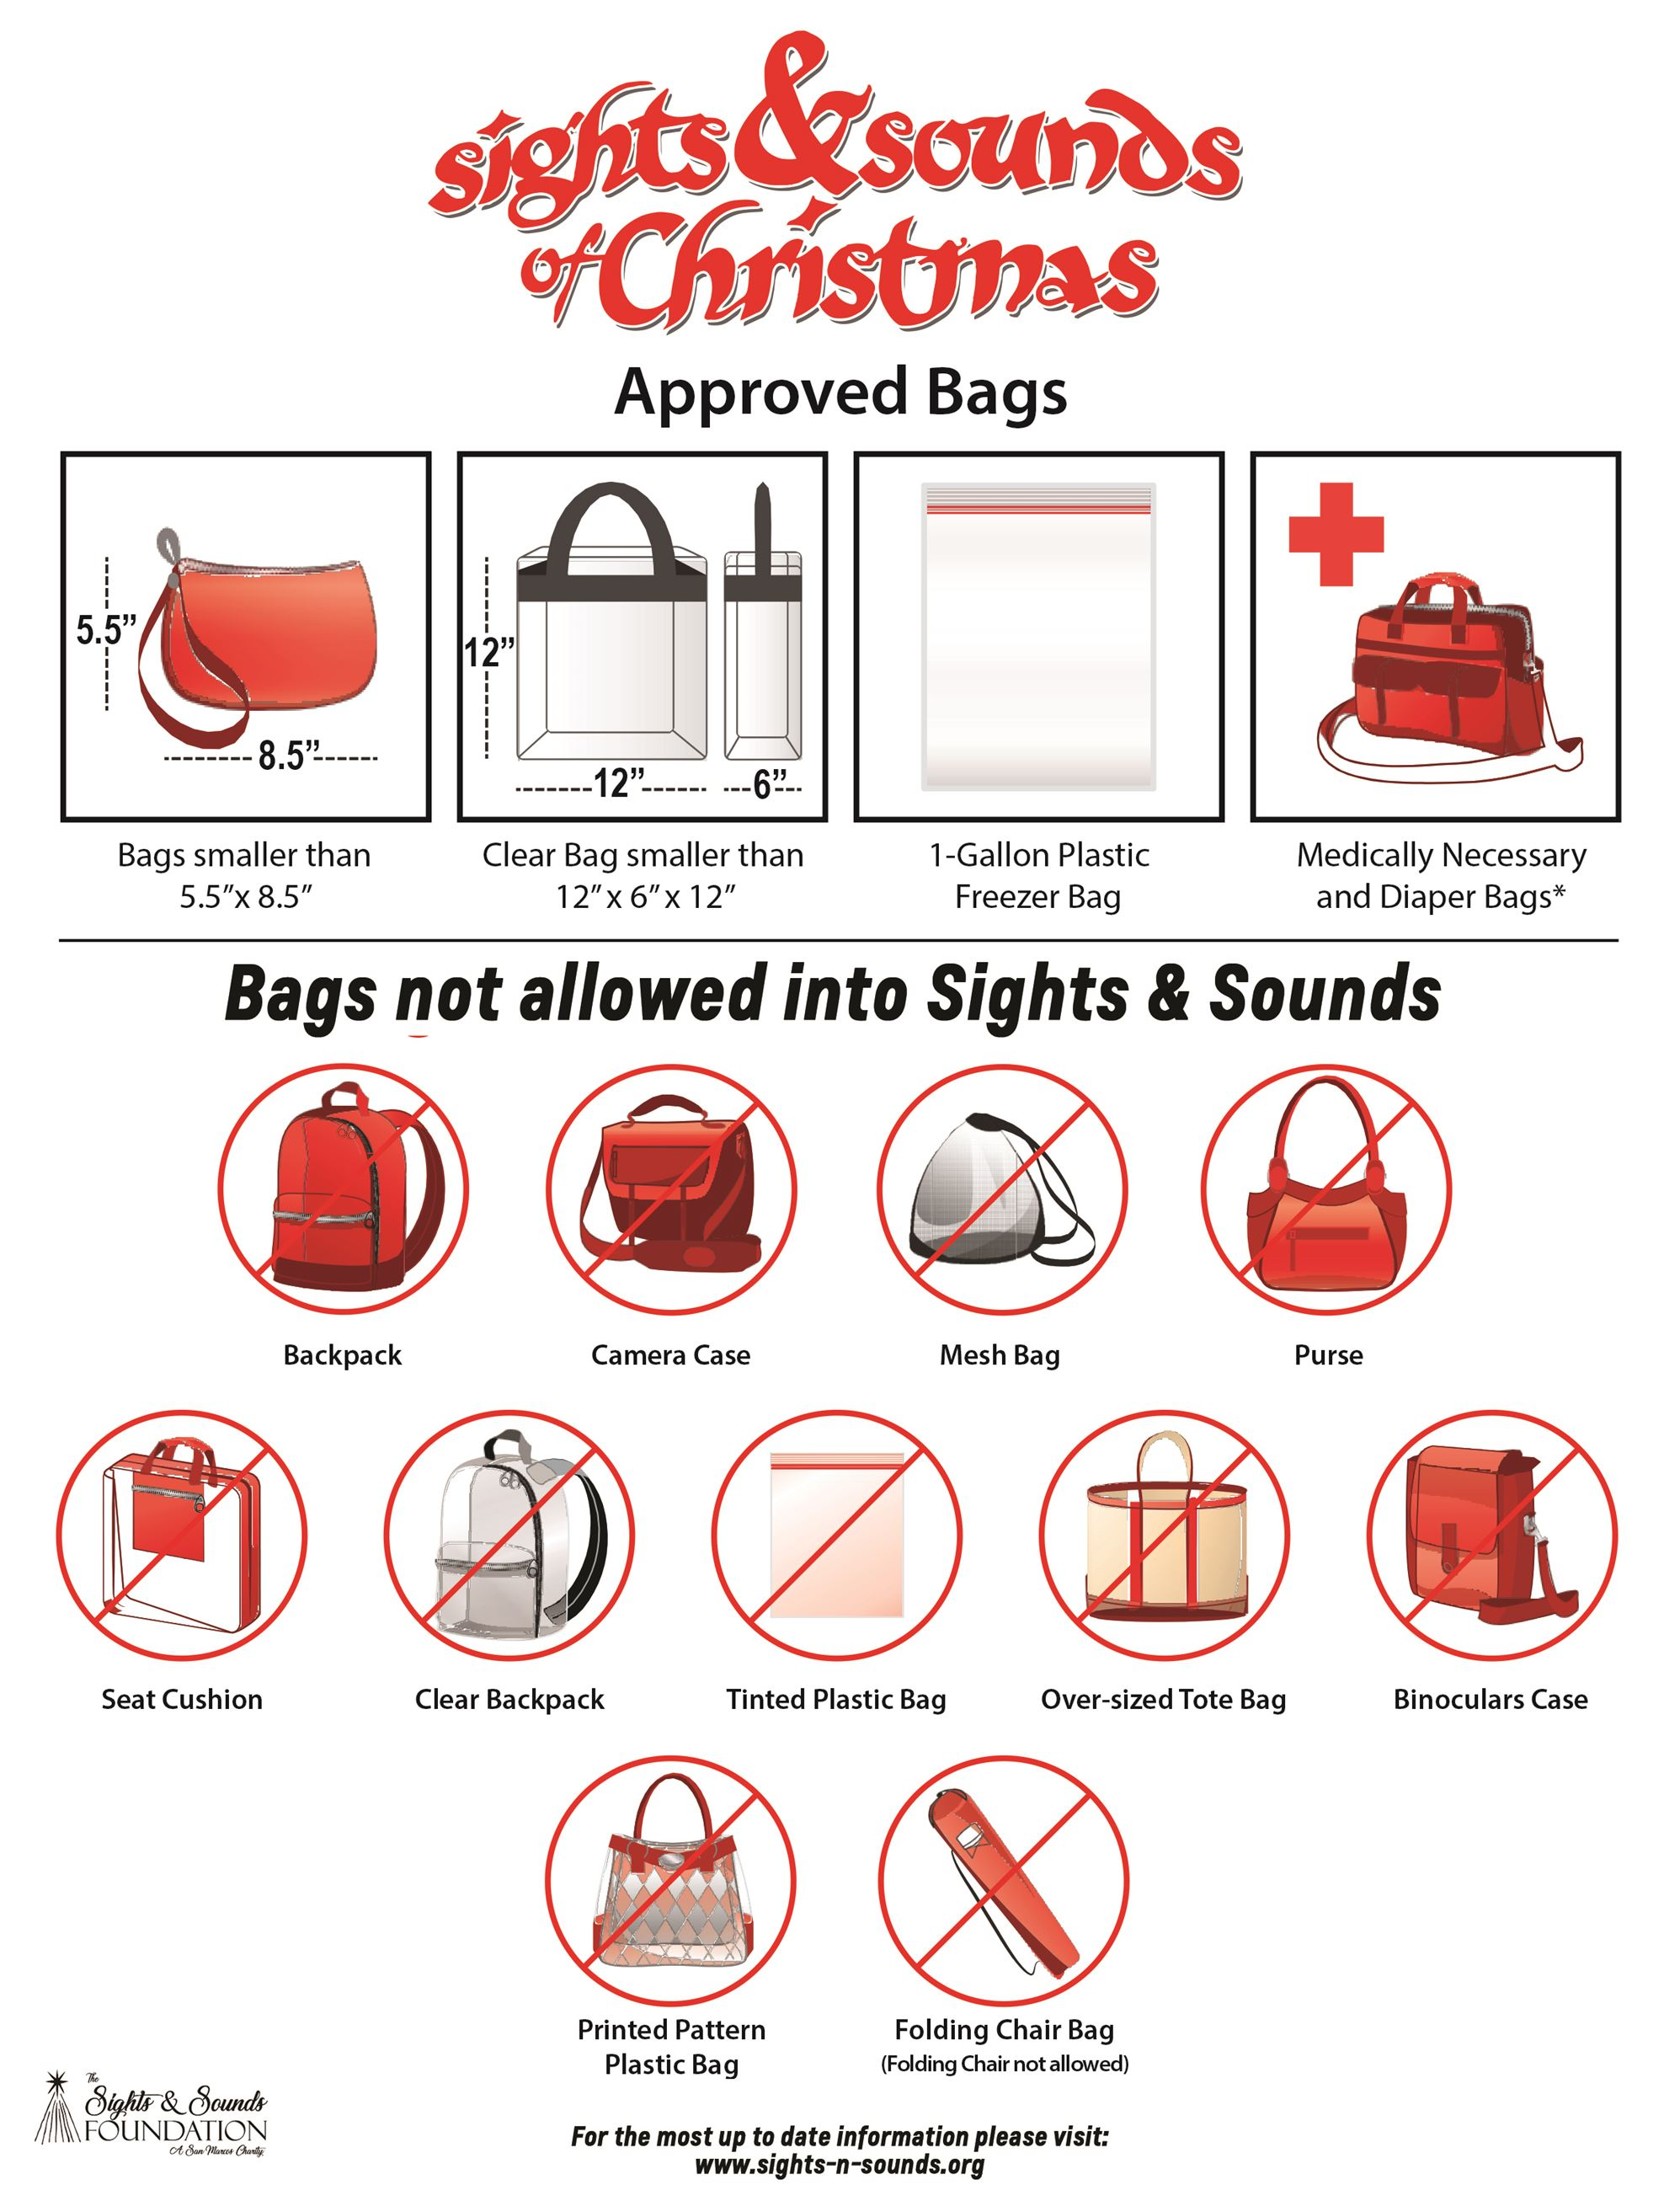 A chart showing illustrations of bags permitted and not permitted at the event. The list of bags in